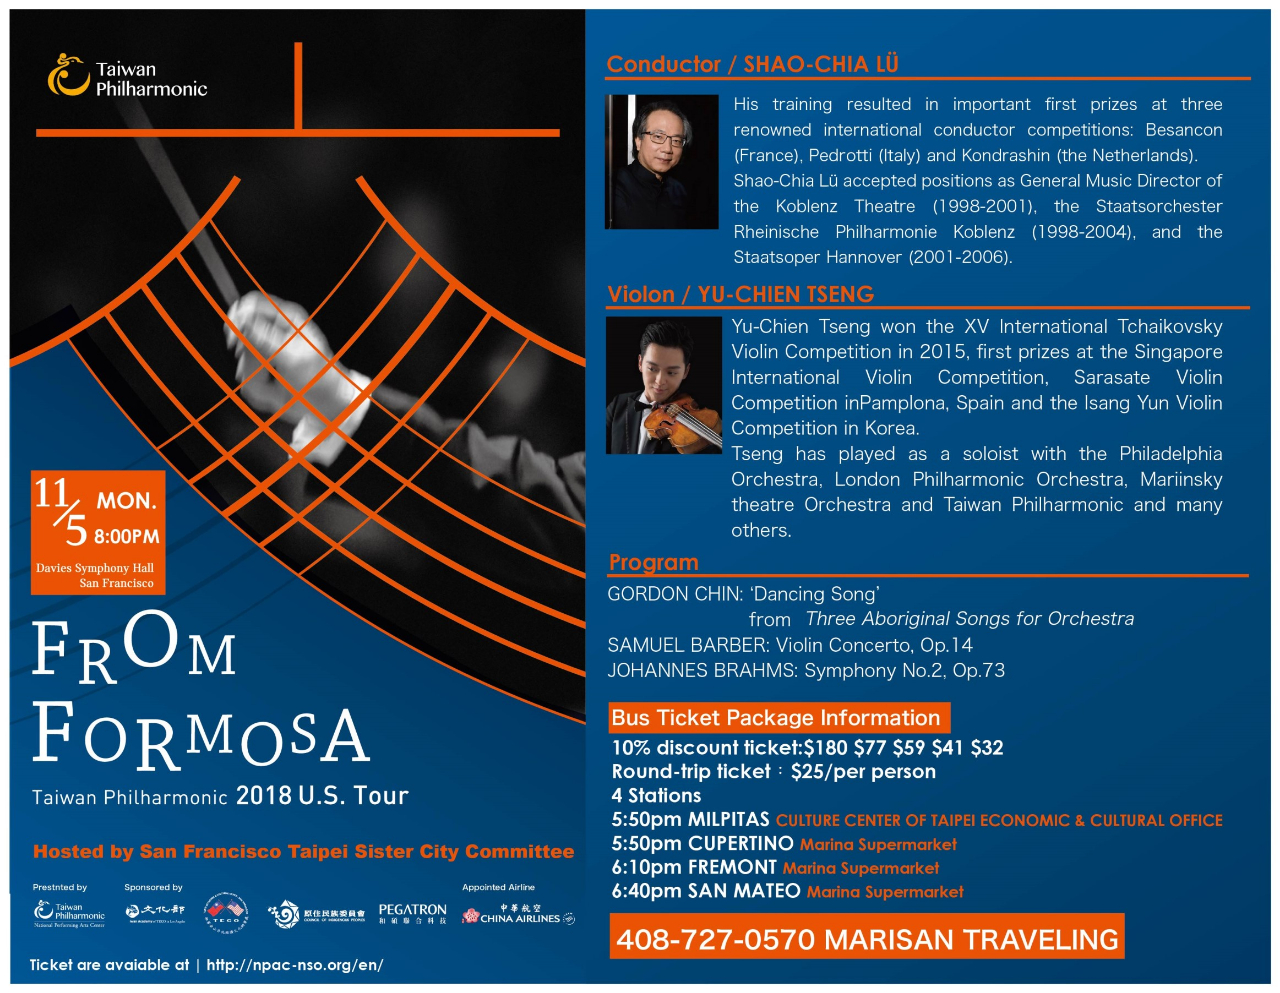 'From Formosa' — Taiwan Philharmonic to tour West Coast